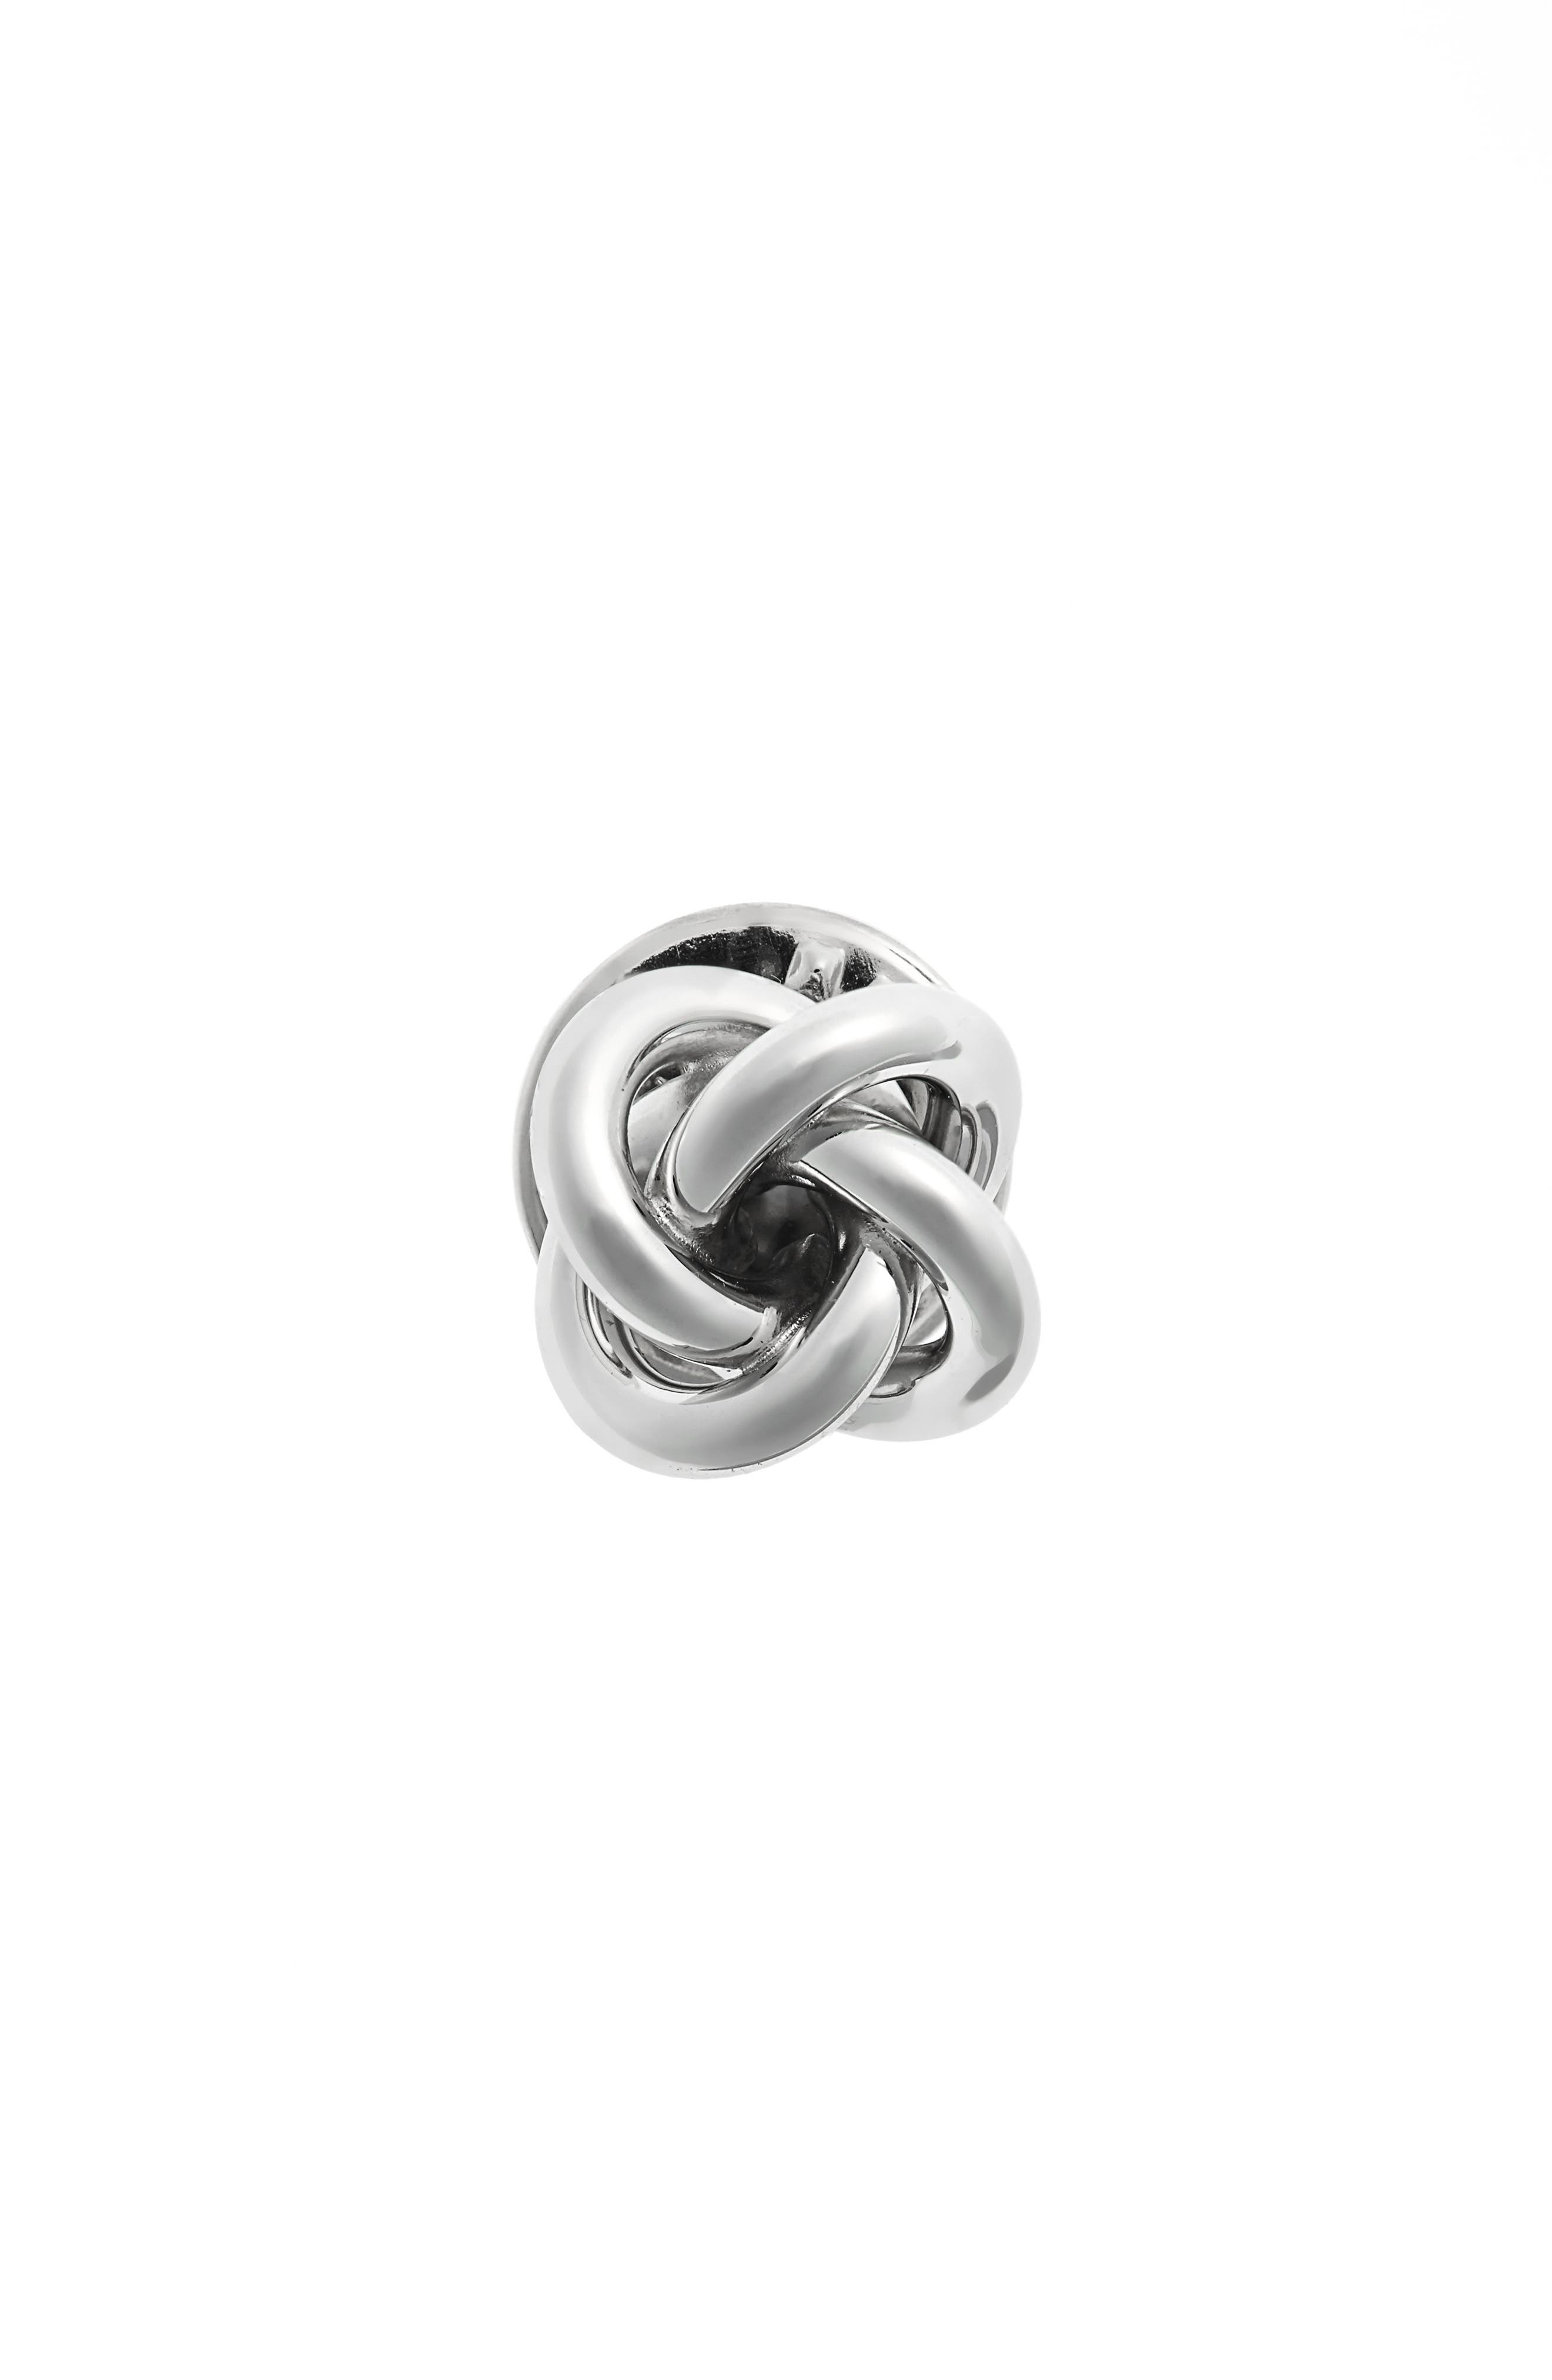 Knot Lapel Pin,                             Main thumbnail 1, color,                             Silver